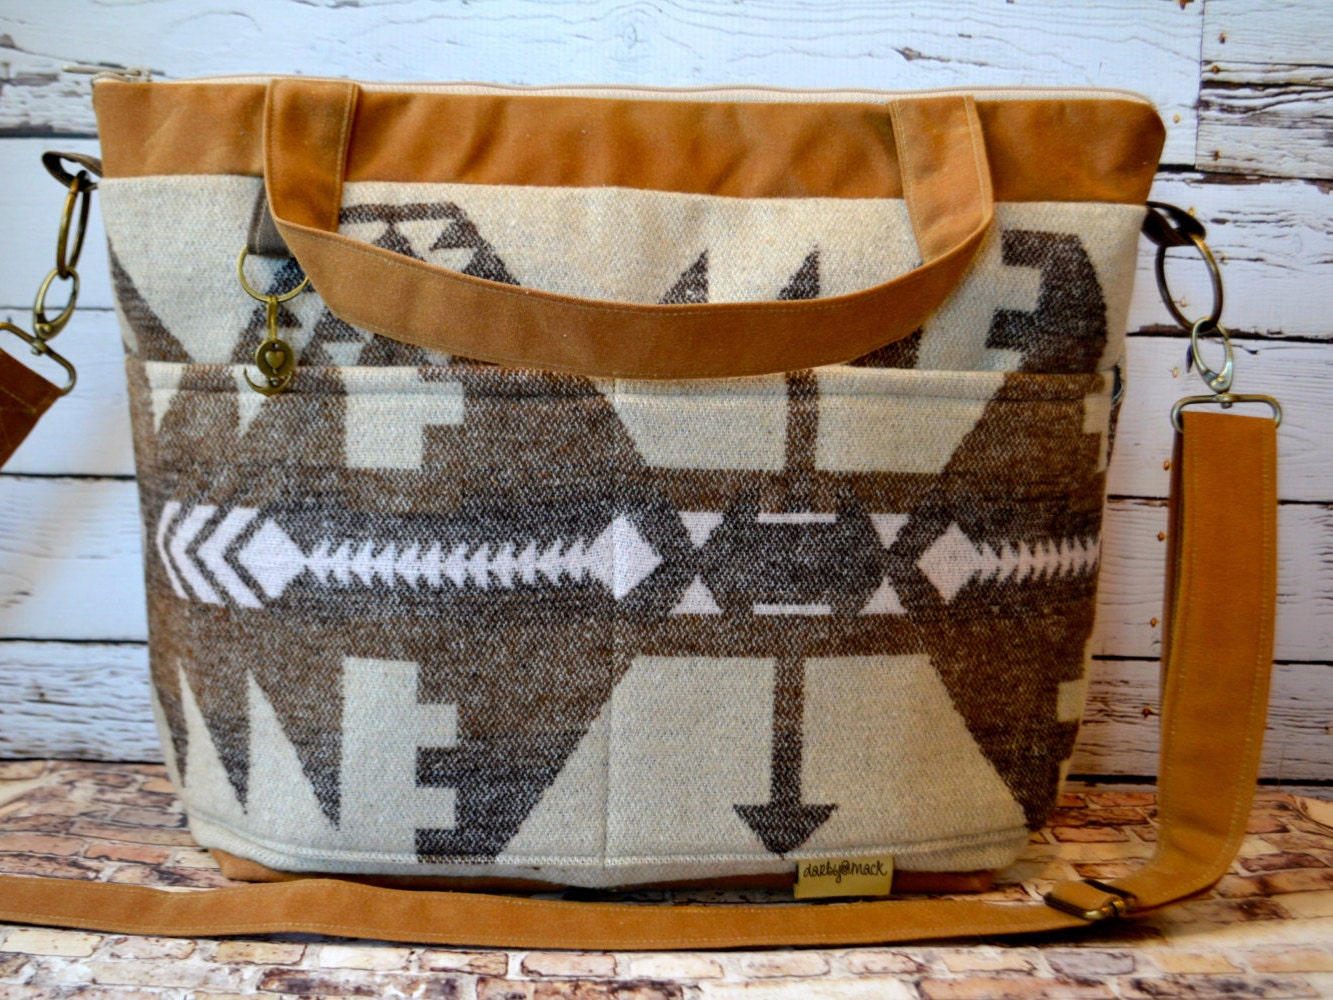 diaper bags made in the usa darby mack wool blanket print. Black Bedroom Furniture Sets. Home Design Ideas